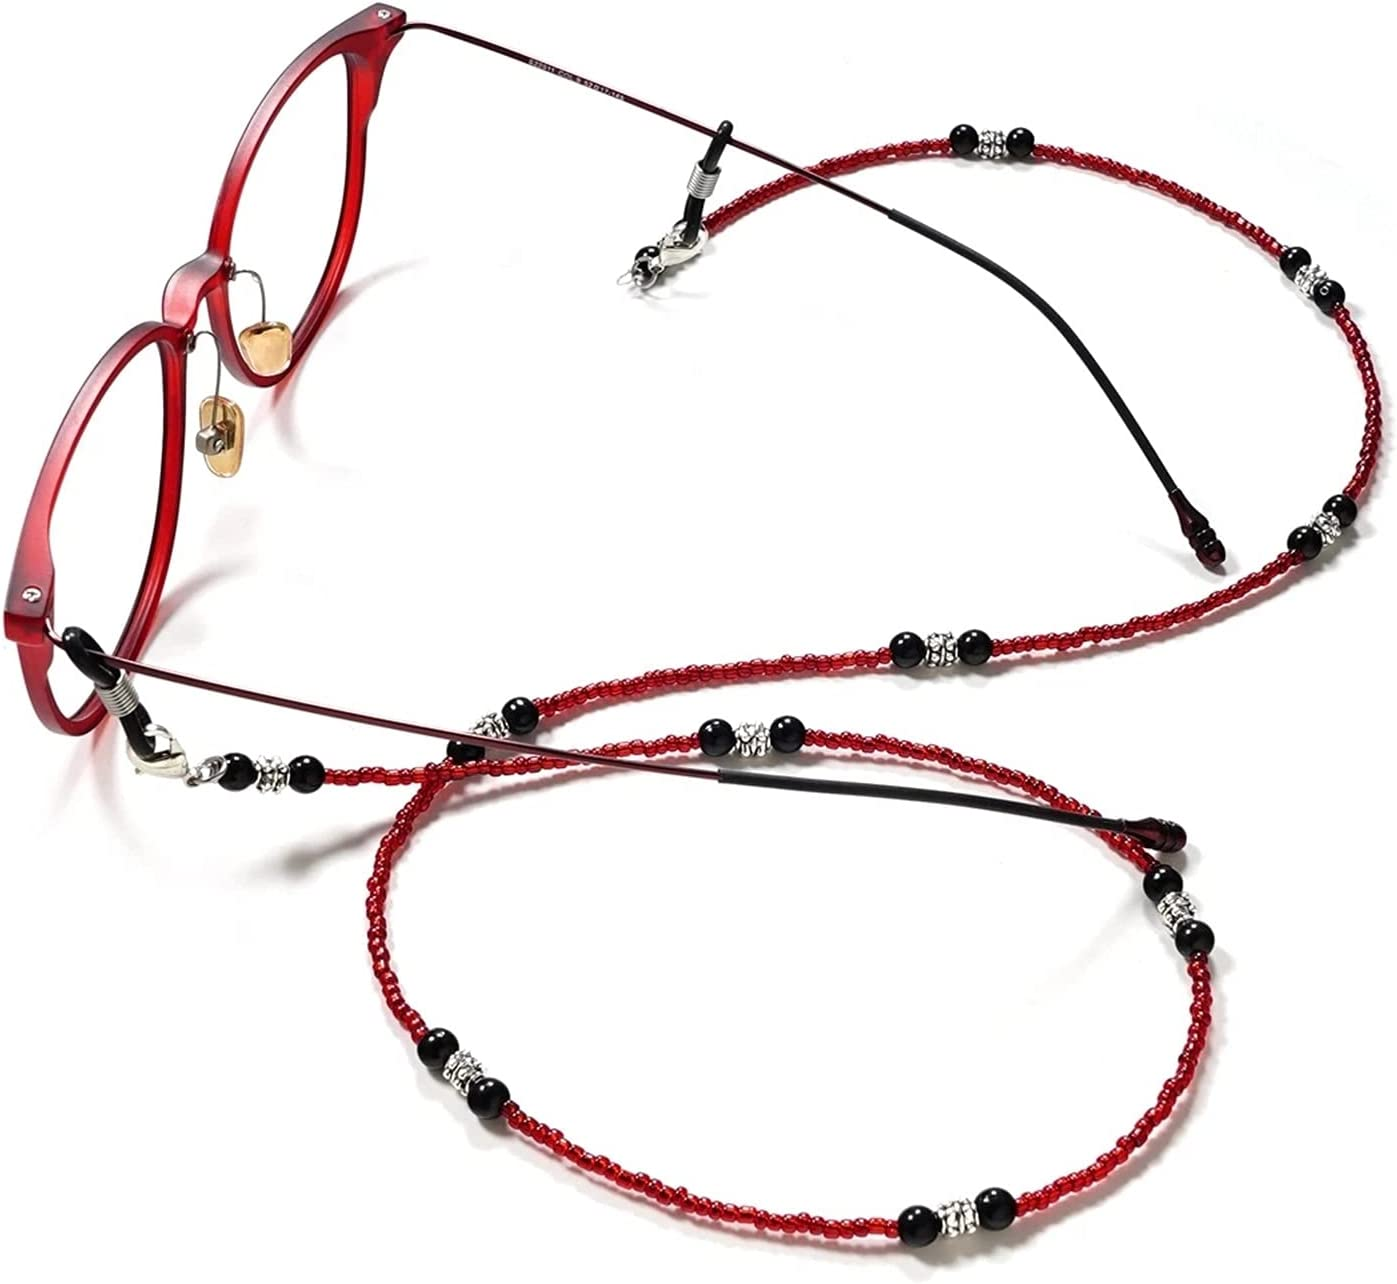 Fashion Handmade Eyeglasses Chains Red Black Glass Beads Sunglasses Chains Anti-Slip Eyewear Holder Necklace Rope for (Color : Red)